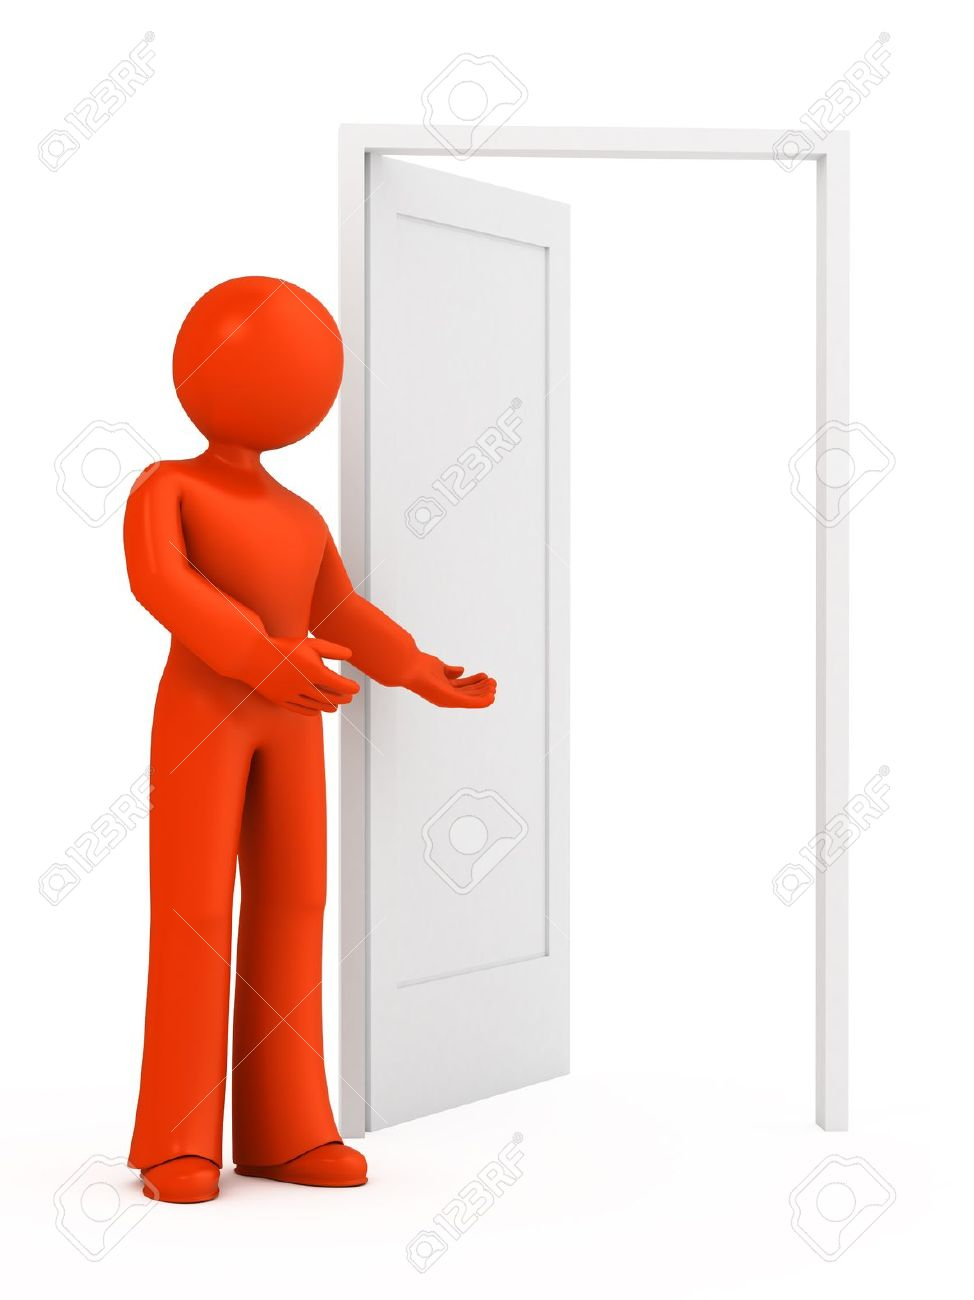 Open Door Welcome Clipart to enter - house decoration design ideas is the new way to design